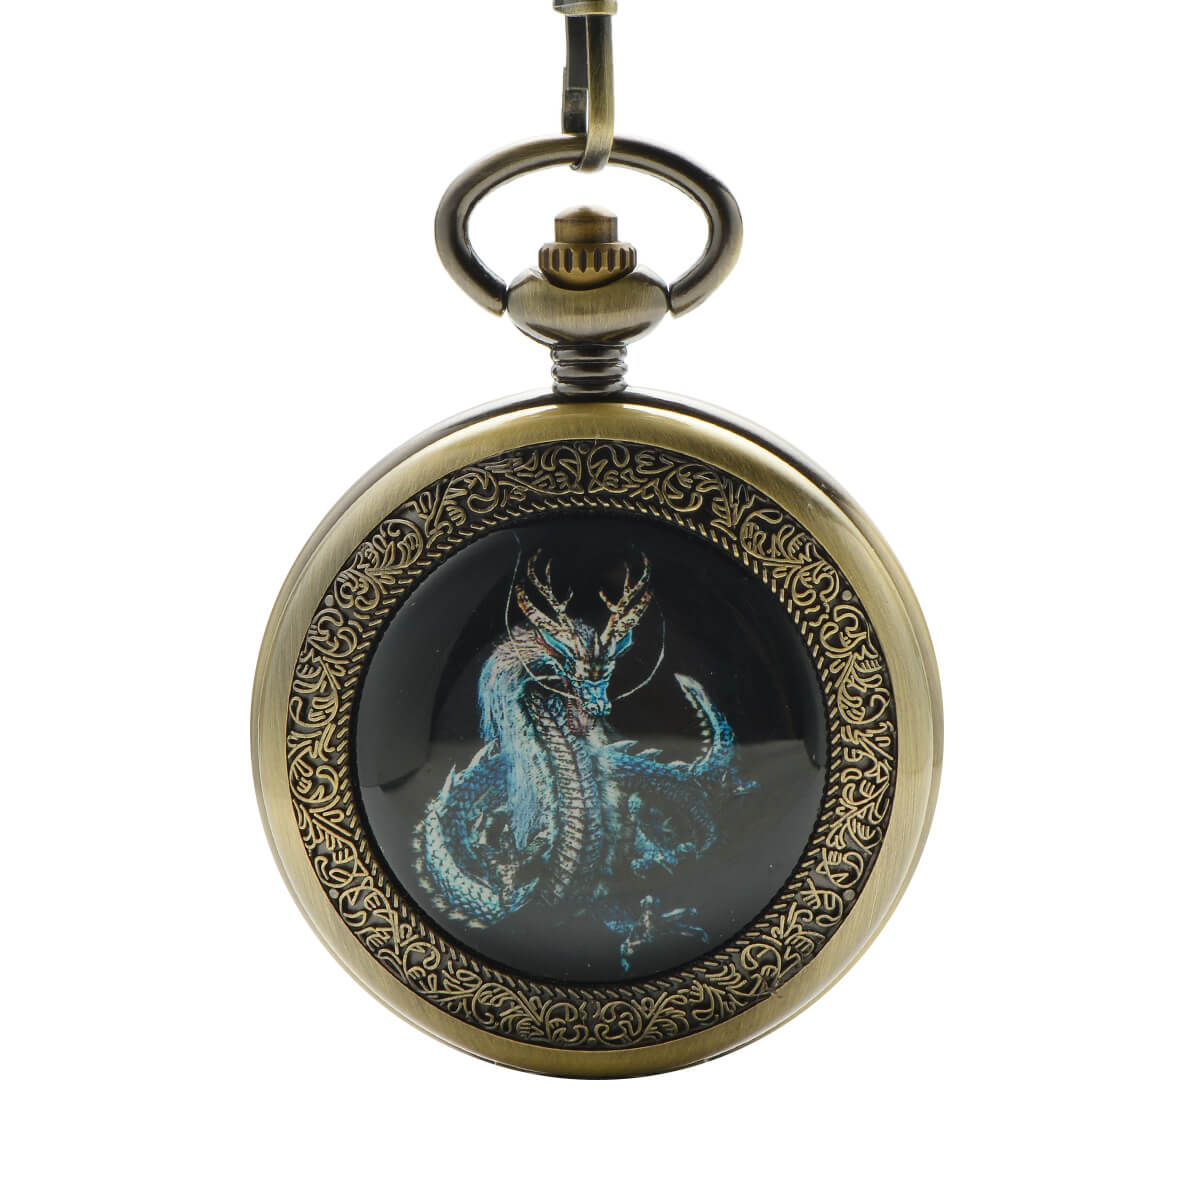 personalized antique mechanical pocket watch